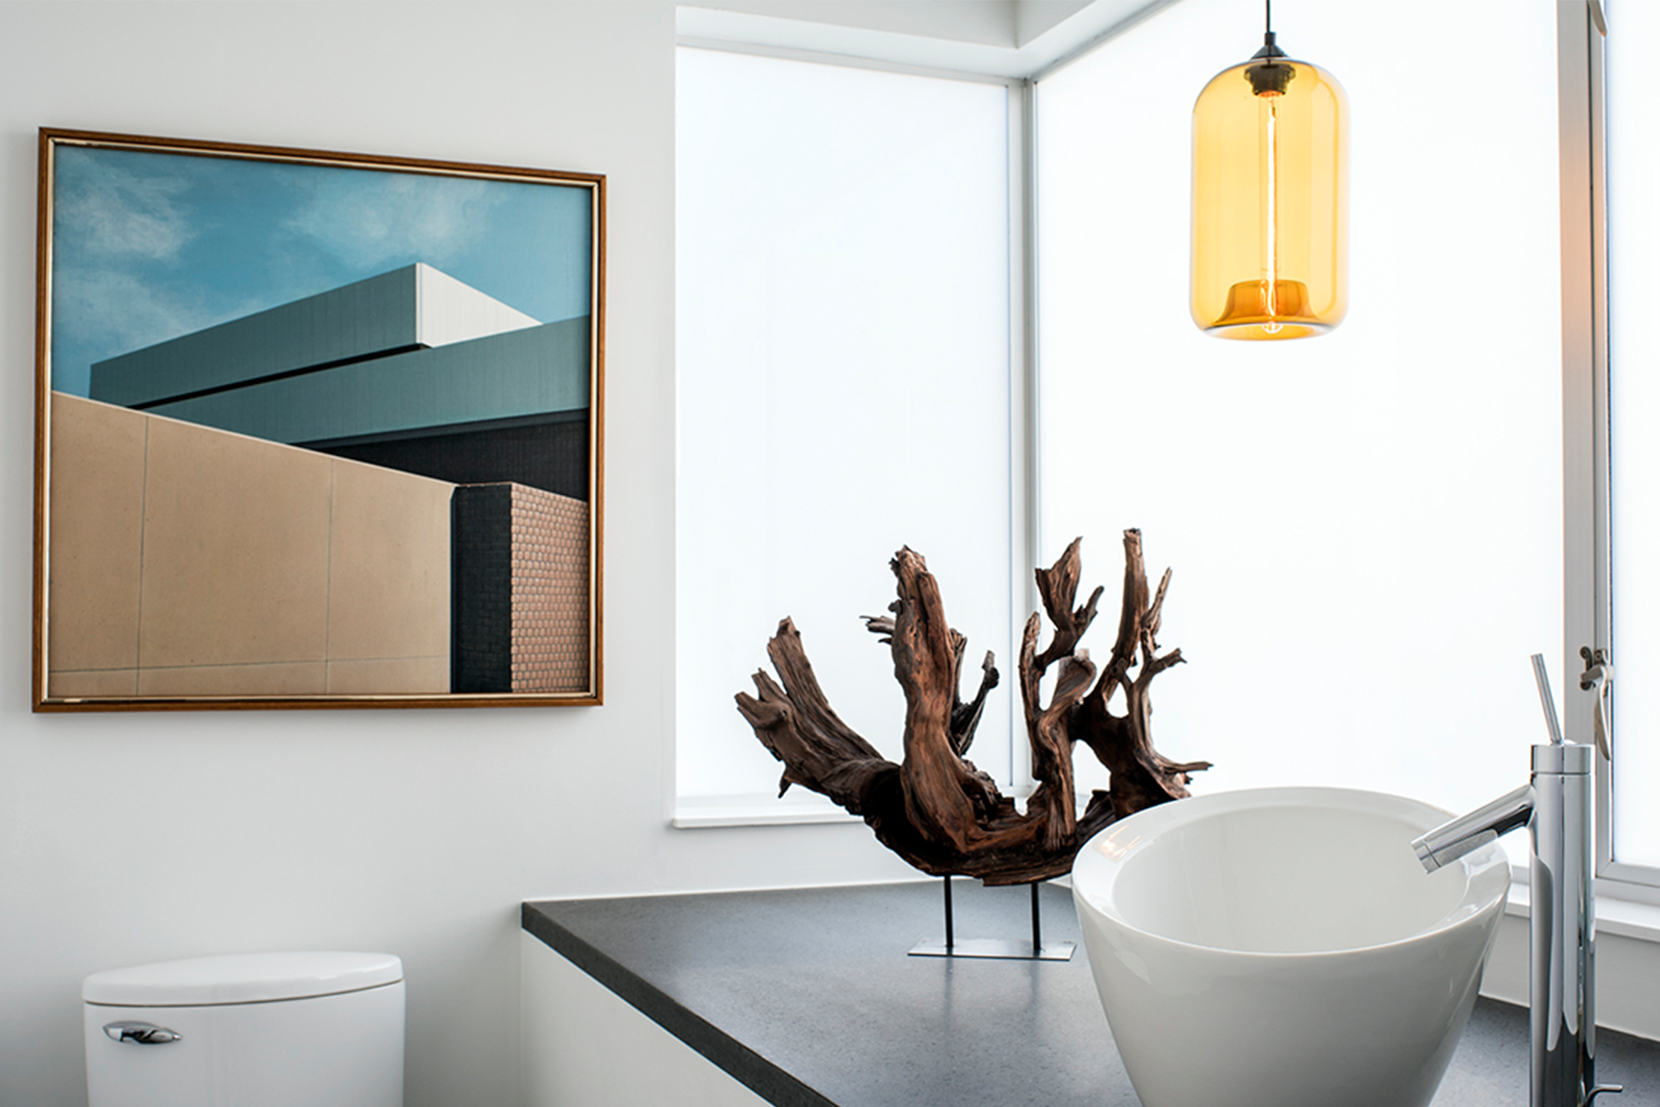 Lighting-Project-Pages_0003s_0000_Bathroom-Modern-Pendant-Lighting.png